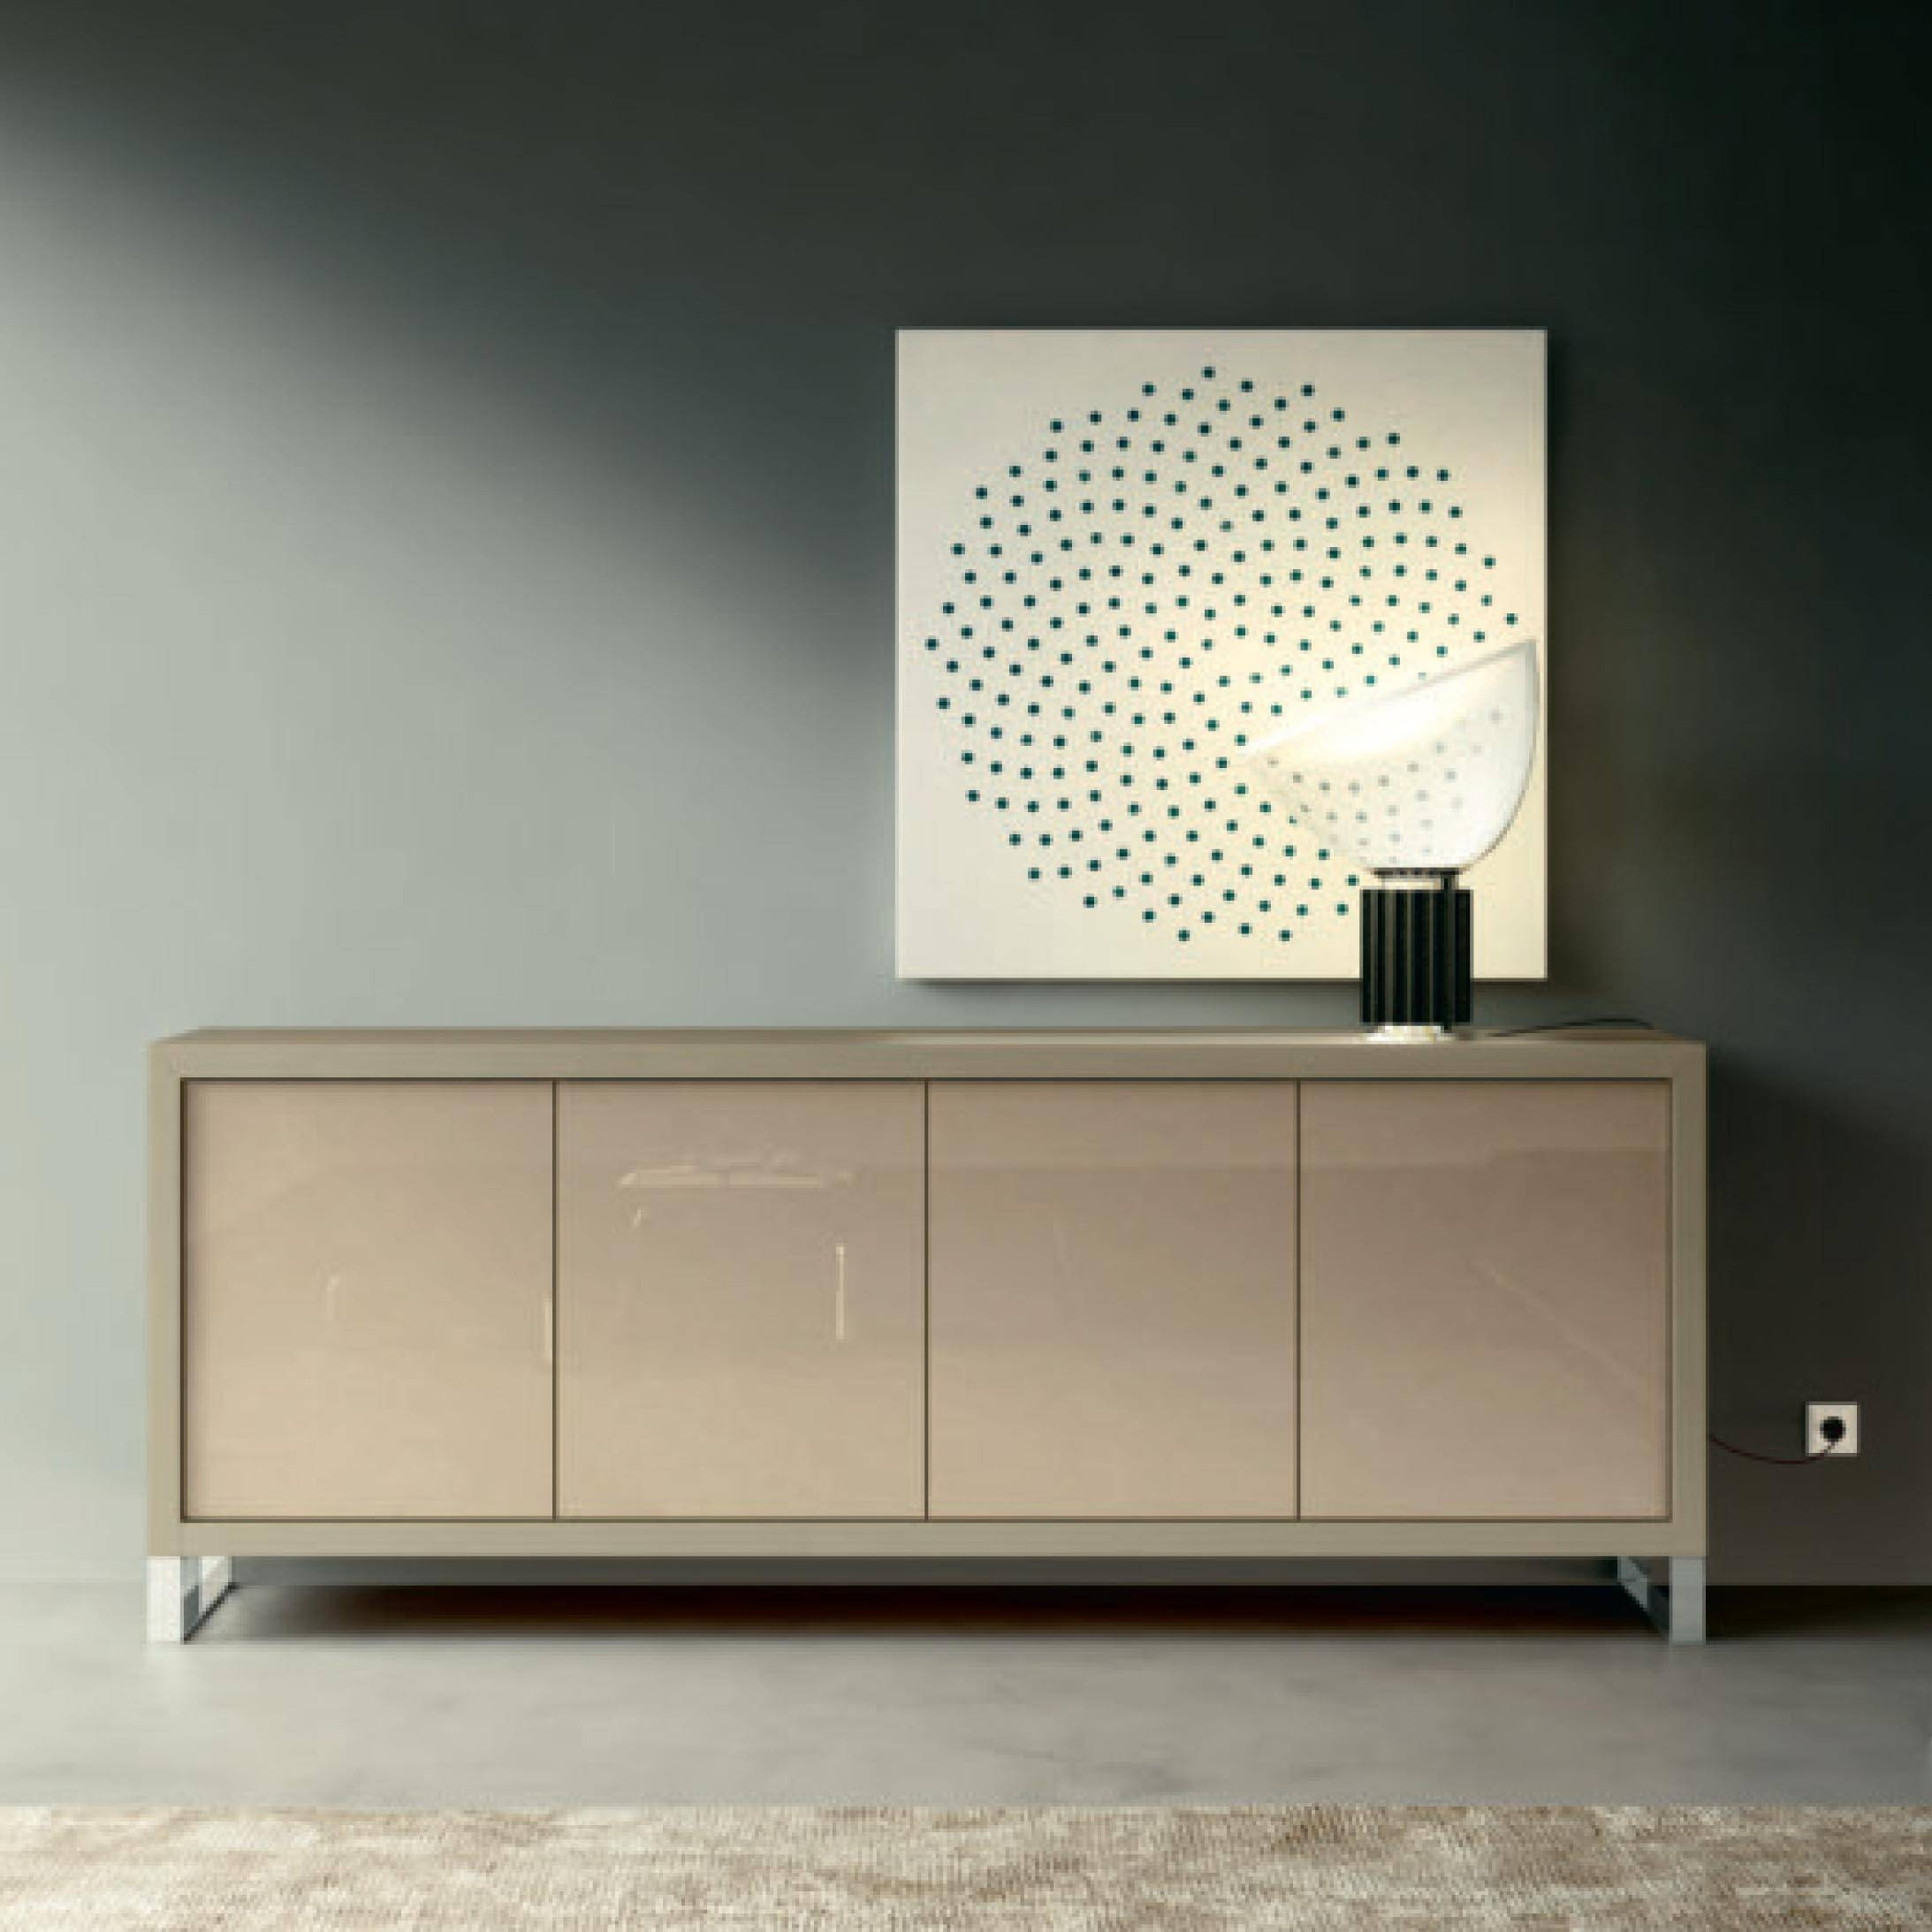 Italian Contemporary Design Minimalist Sideboard, Chest Perla Intended For Glass Sideboard (#12 of 20)